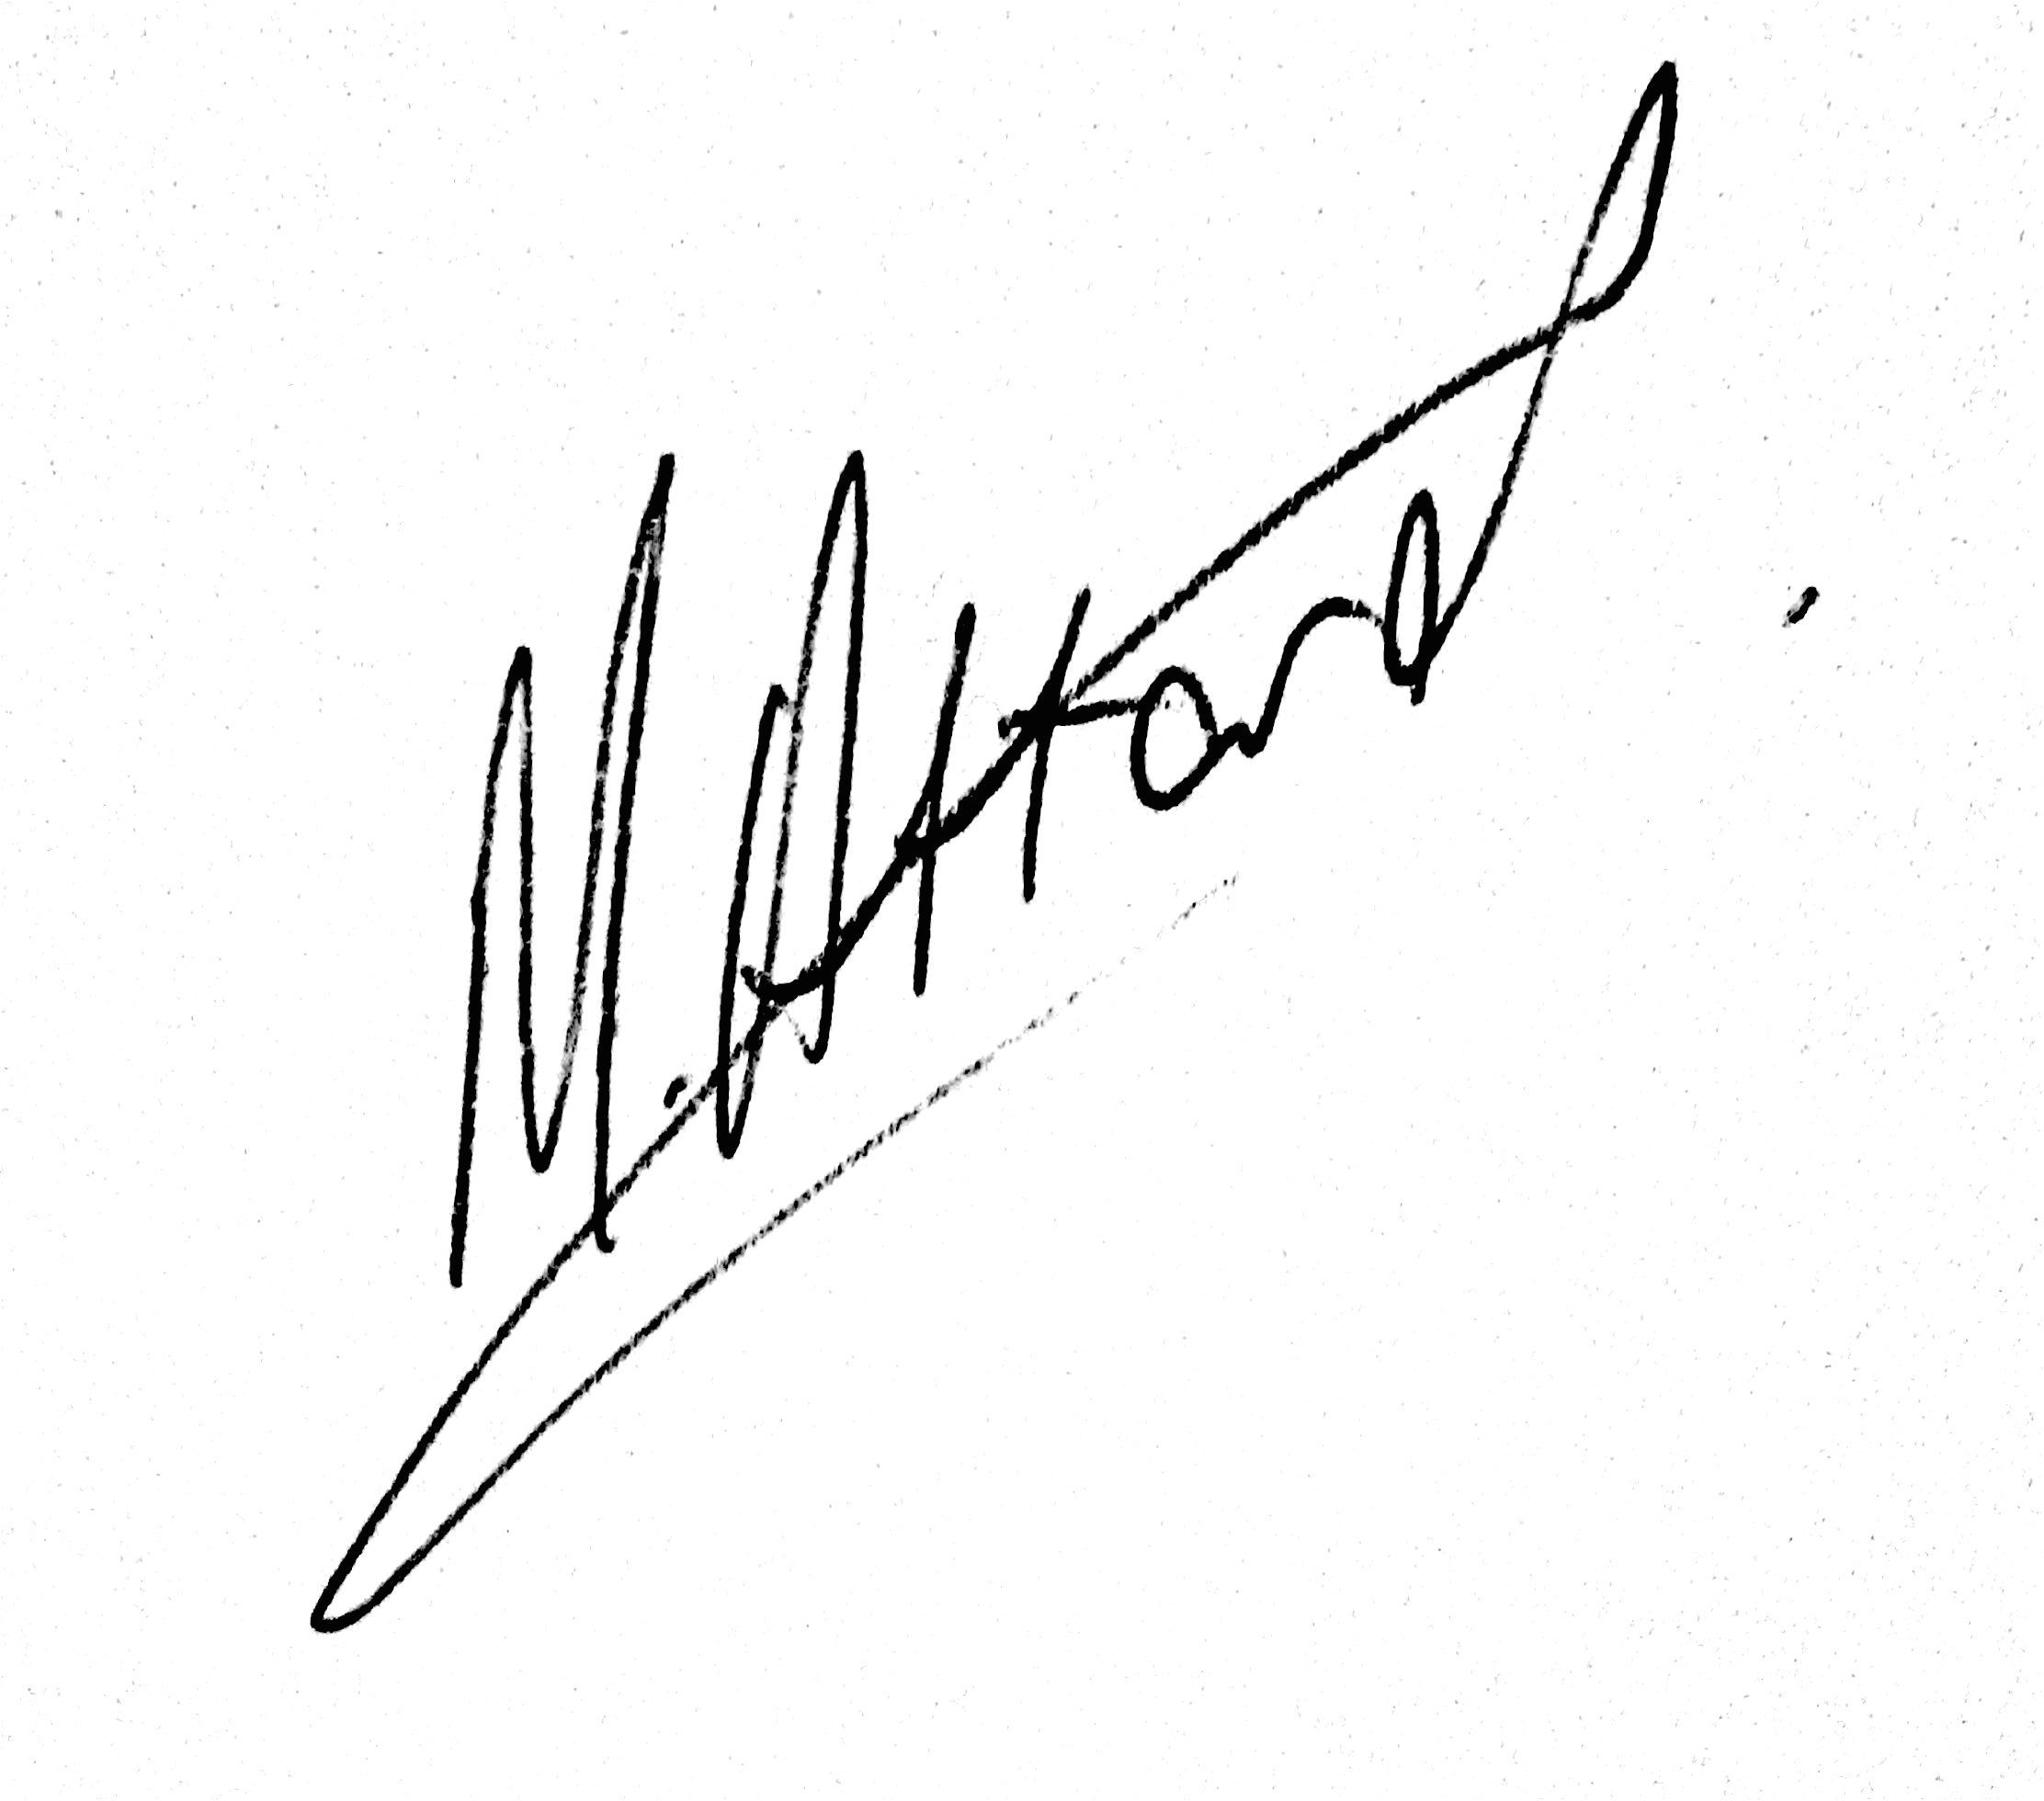 Matthew Attard's Signature